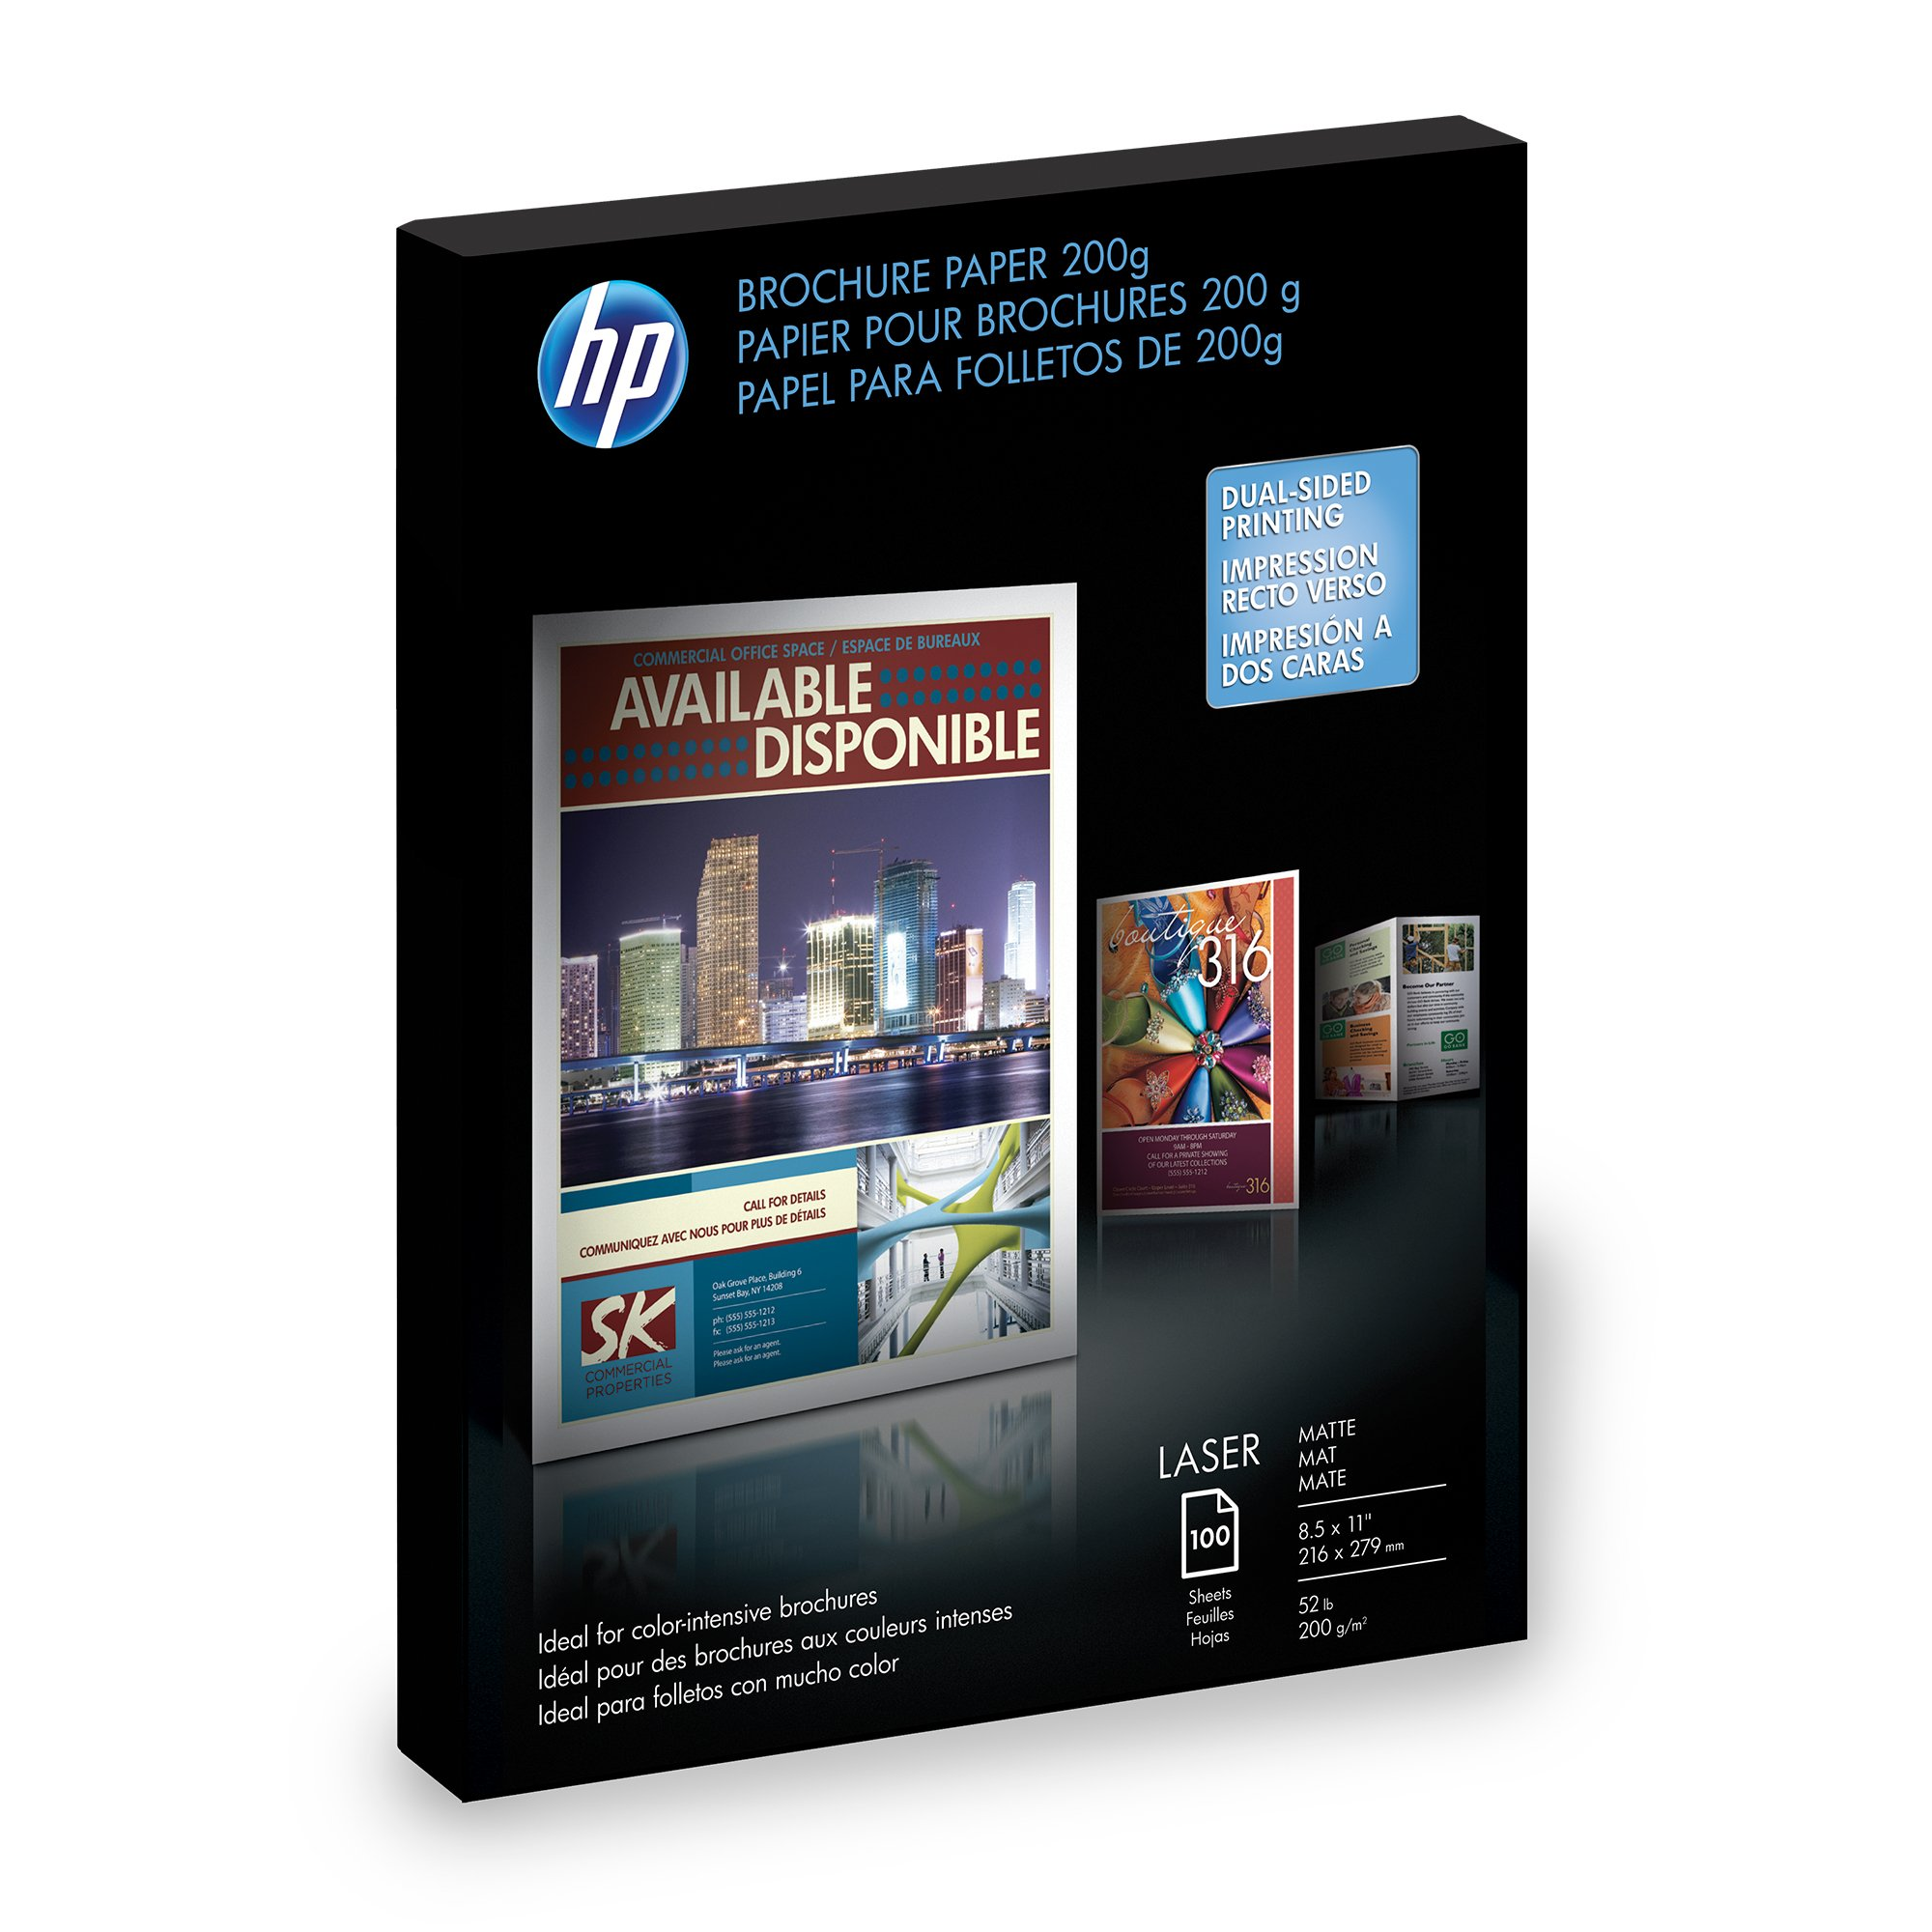 HP Q8824A Brochure Paper for Laser Printer, Matte, 8.5x11, 100 Sheets by HP (Image #6)